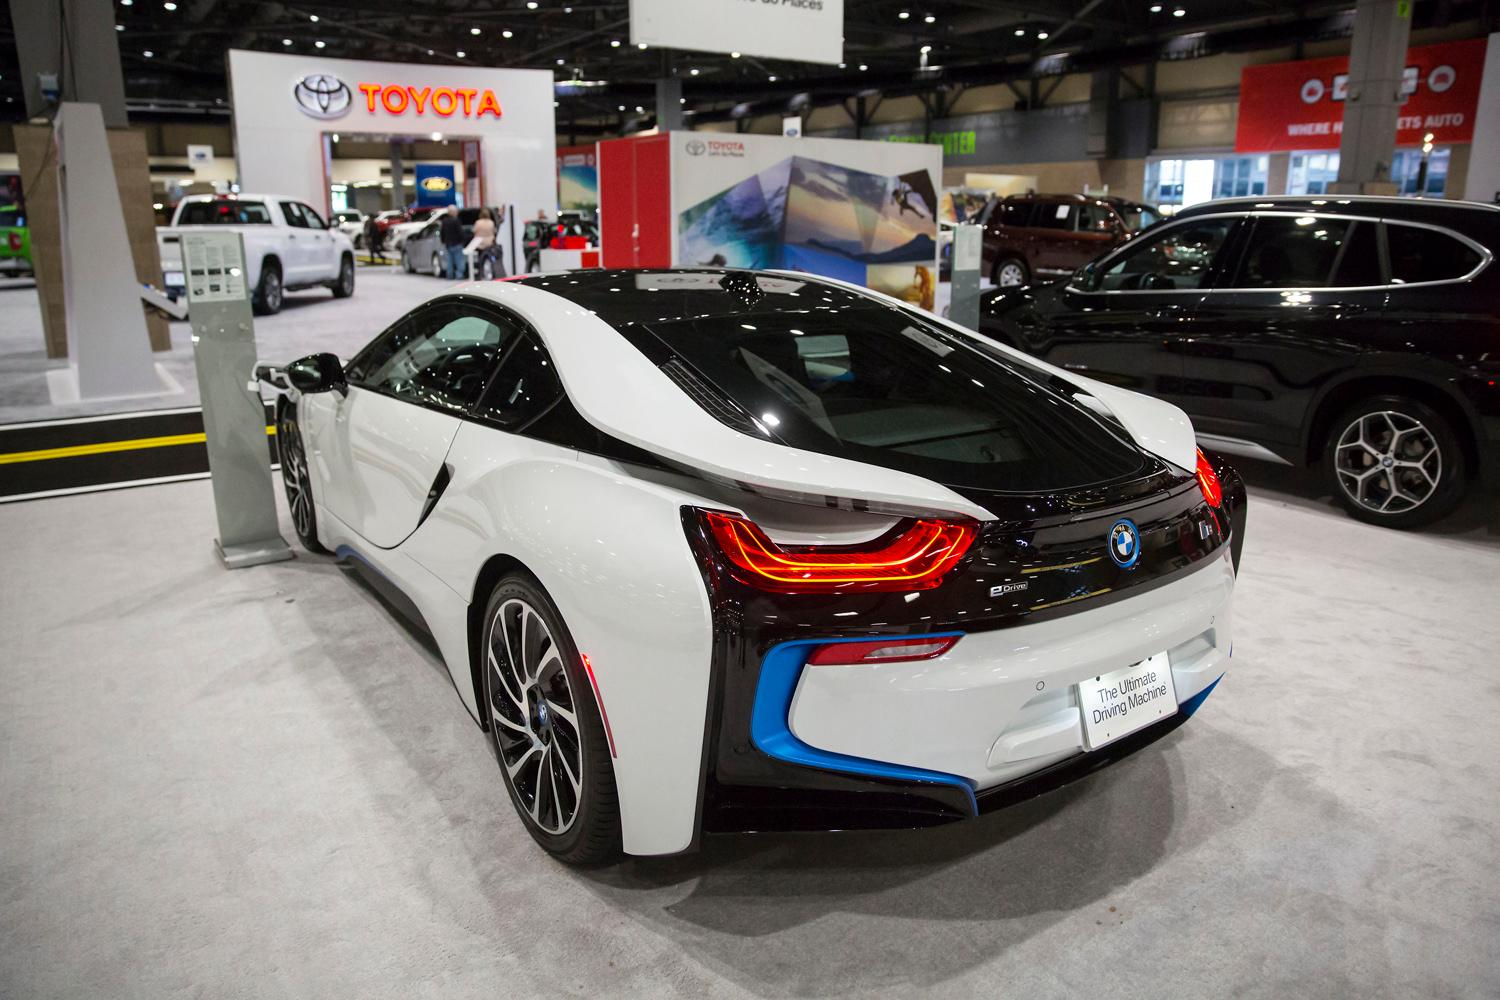 The BMW i8 has a range of around 330 miles, but costs a whopping $143,000, at the Seattle International Auto Show at the CenturyLink Event Center. (Sy Bean / Seattle Refined)